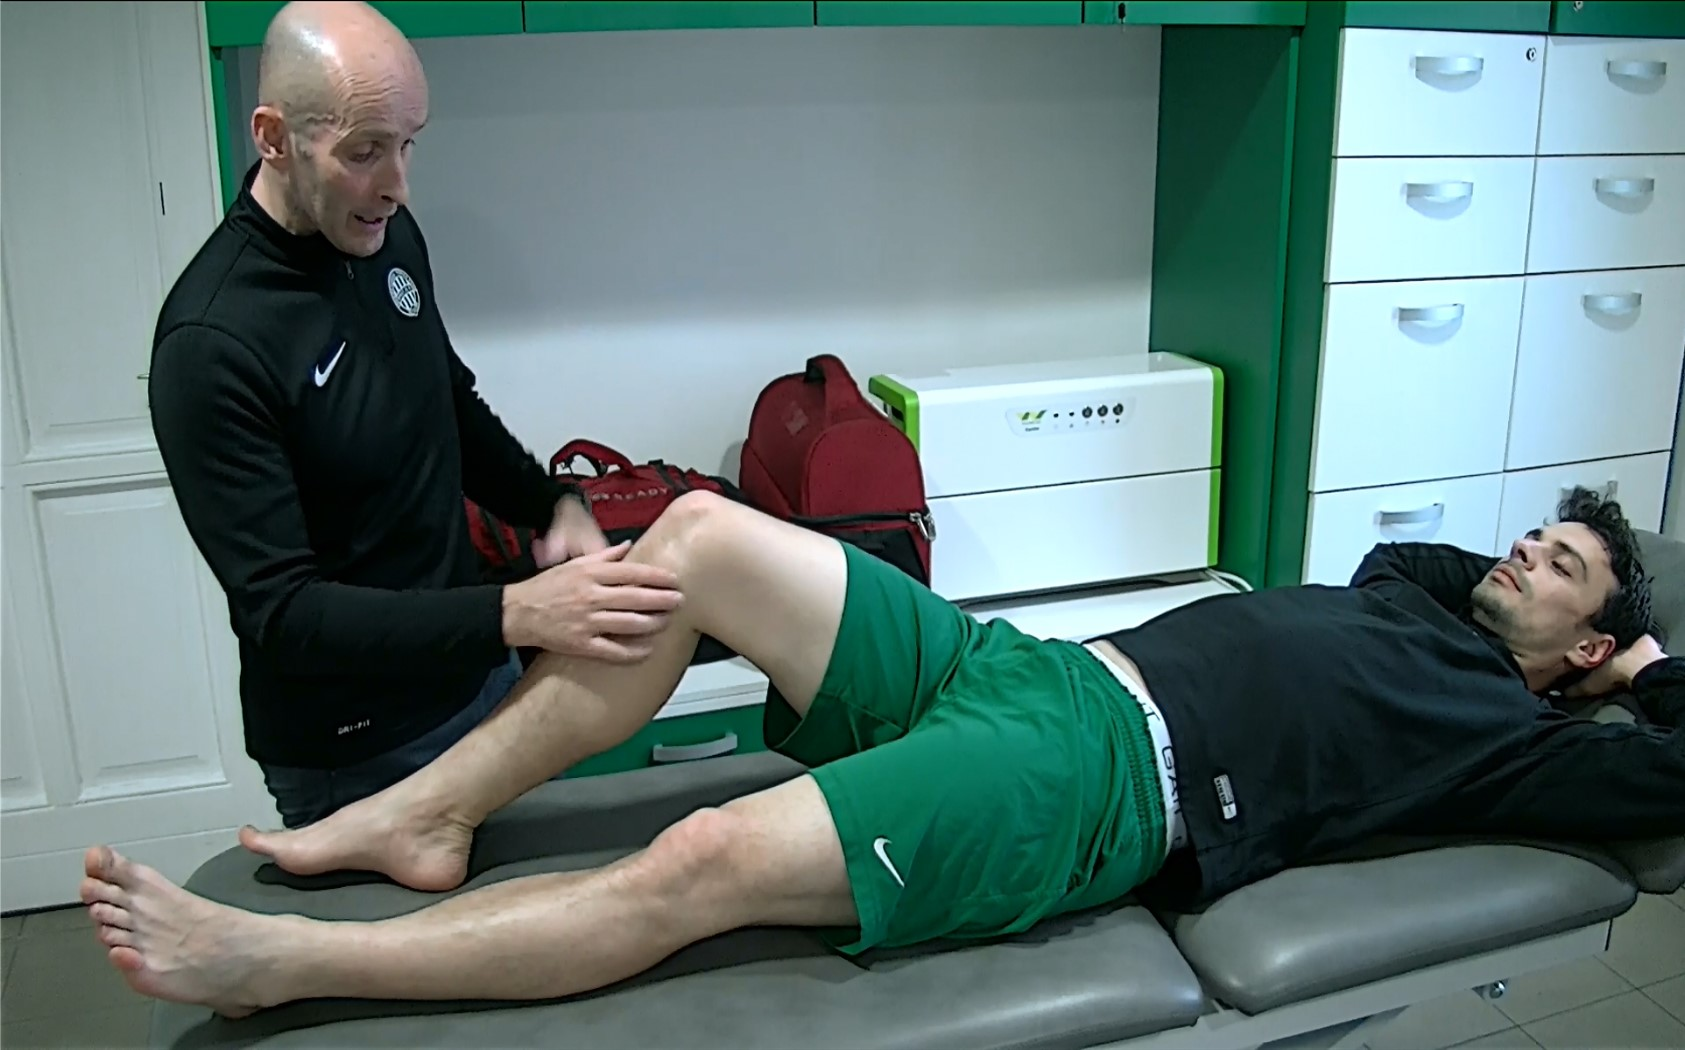 Peter Friar, Physio, examining professional football player